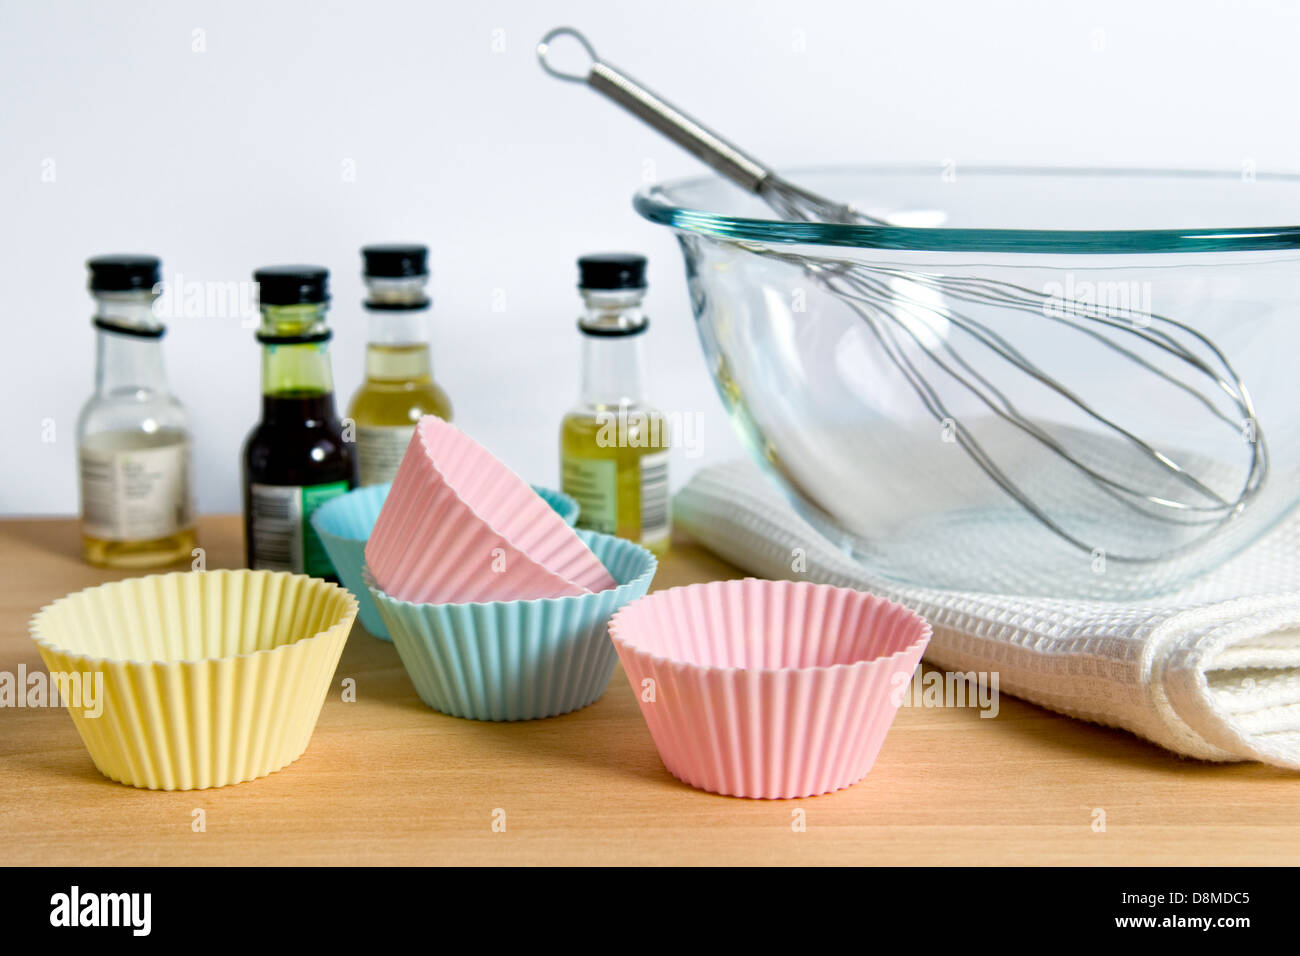 Silicone cup cake wrappers with food colouring and whisk in bowl on wooden chopping board - Stock Image